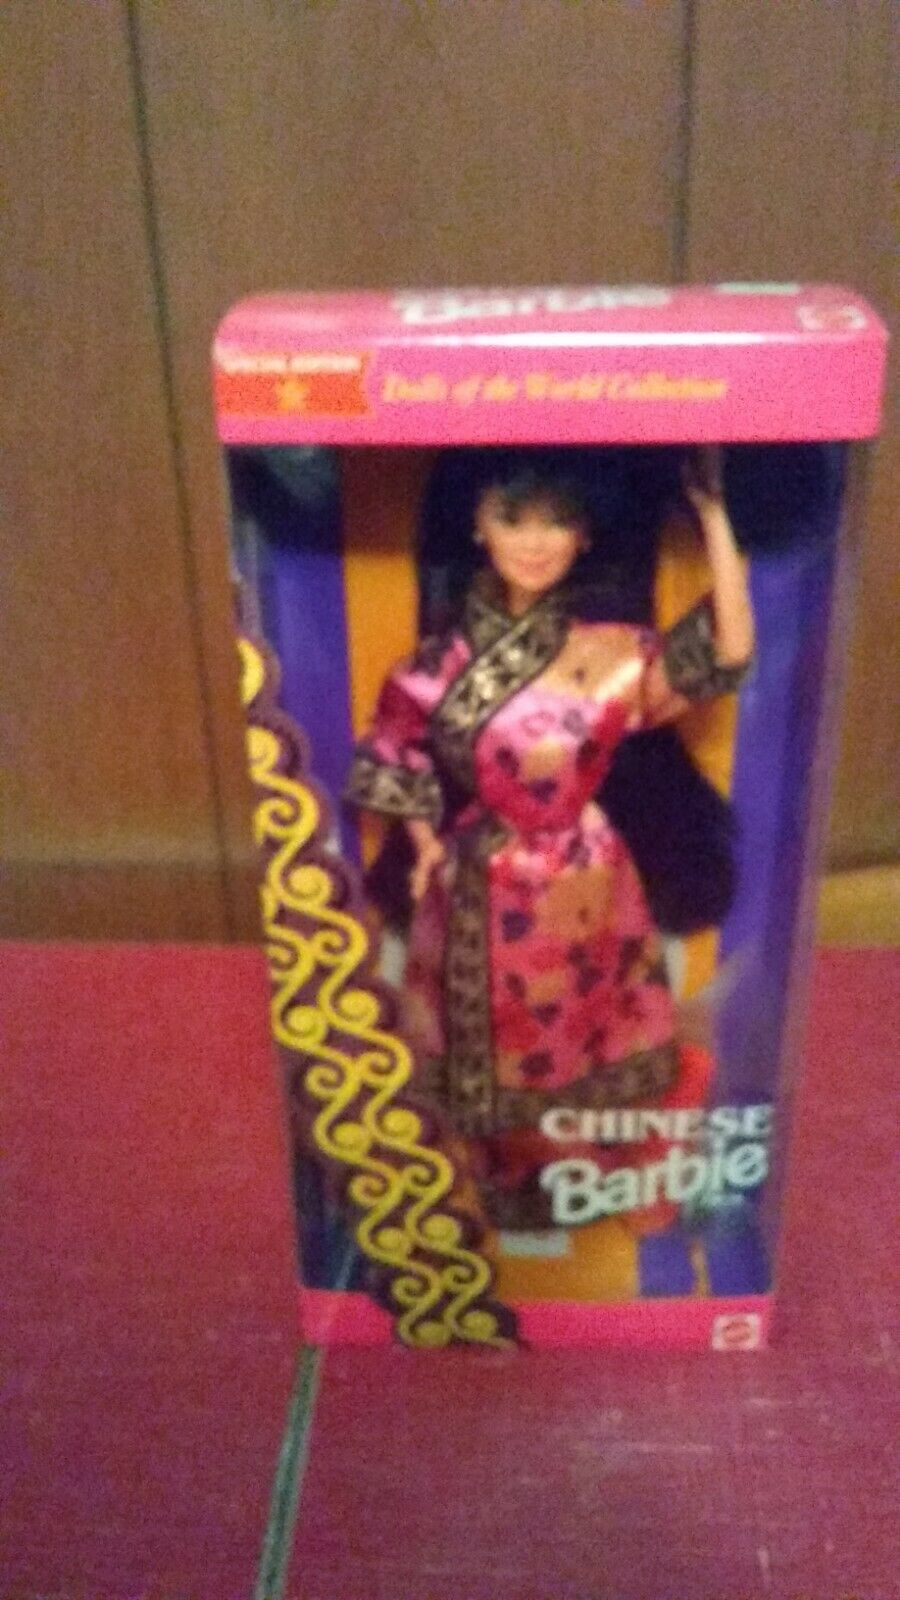 Chinese 1994 Barbie Doll for sale online